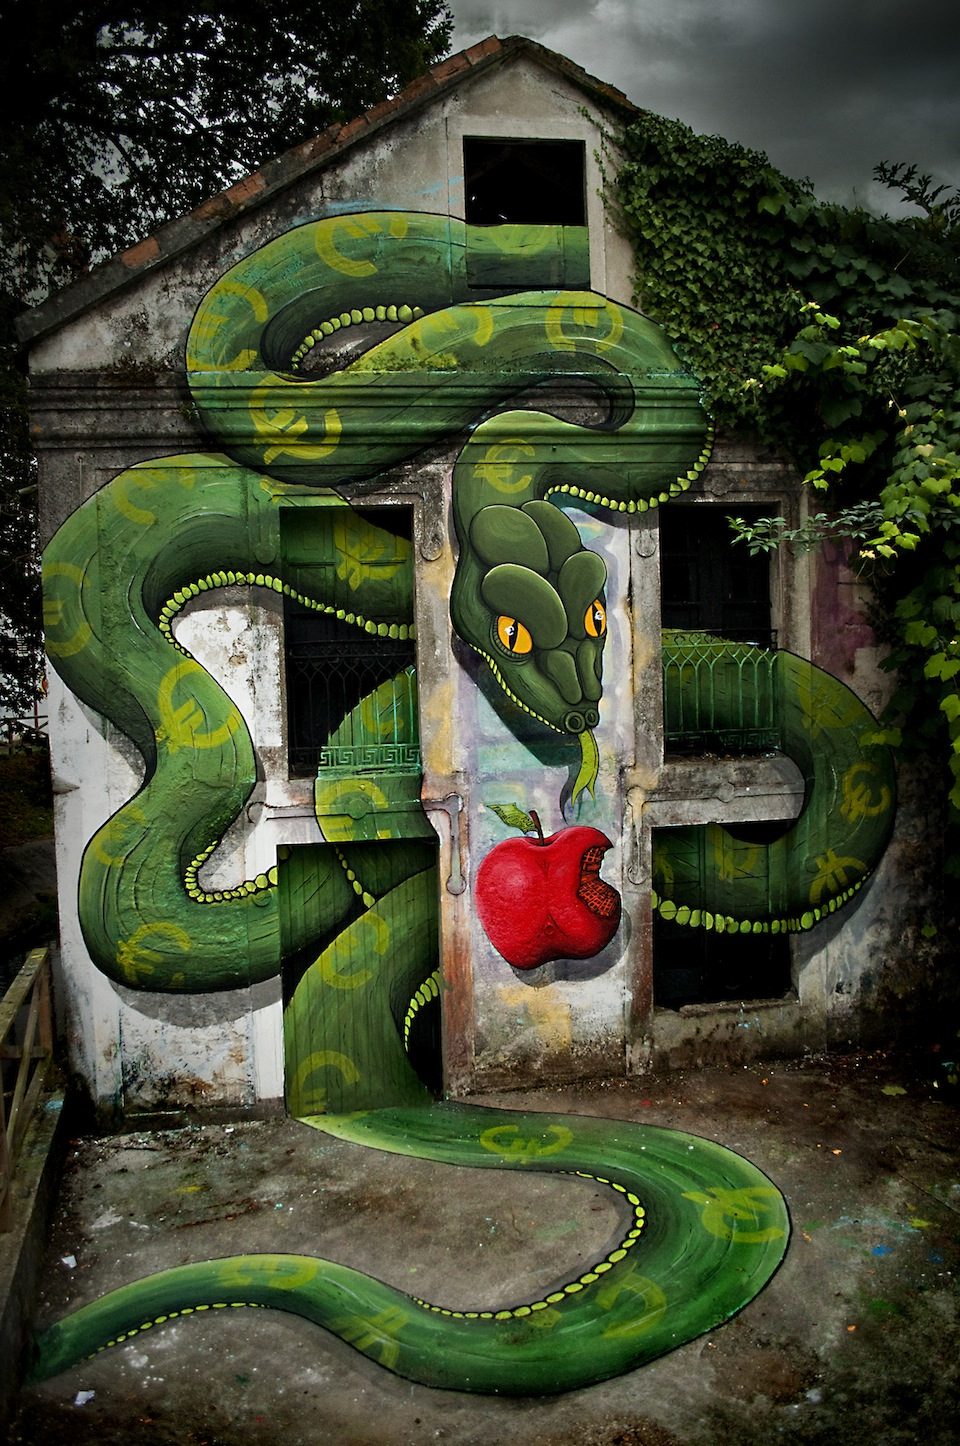 By SOKRAM. At DESORDES CREATIVAS 2012 in Ordes, Galiza, Spain 2